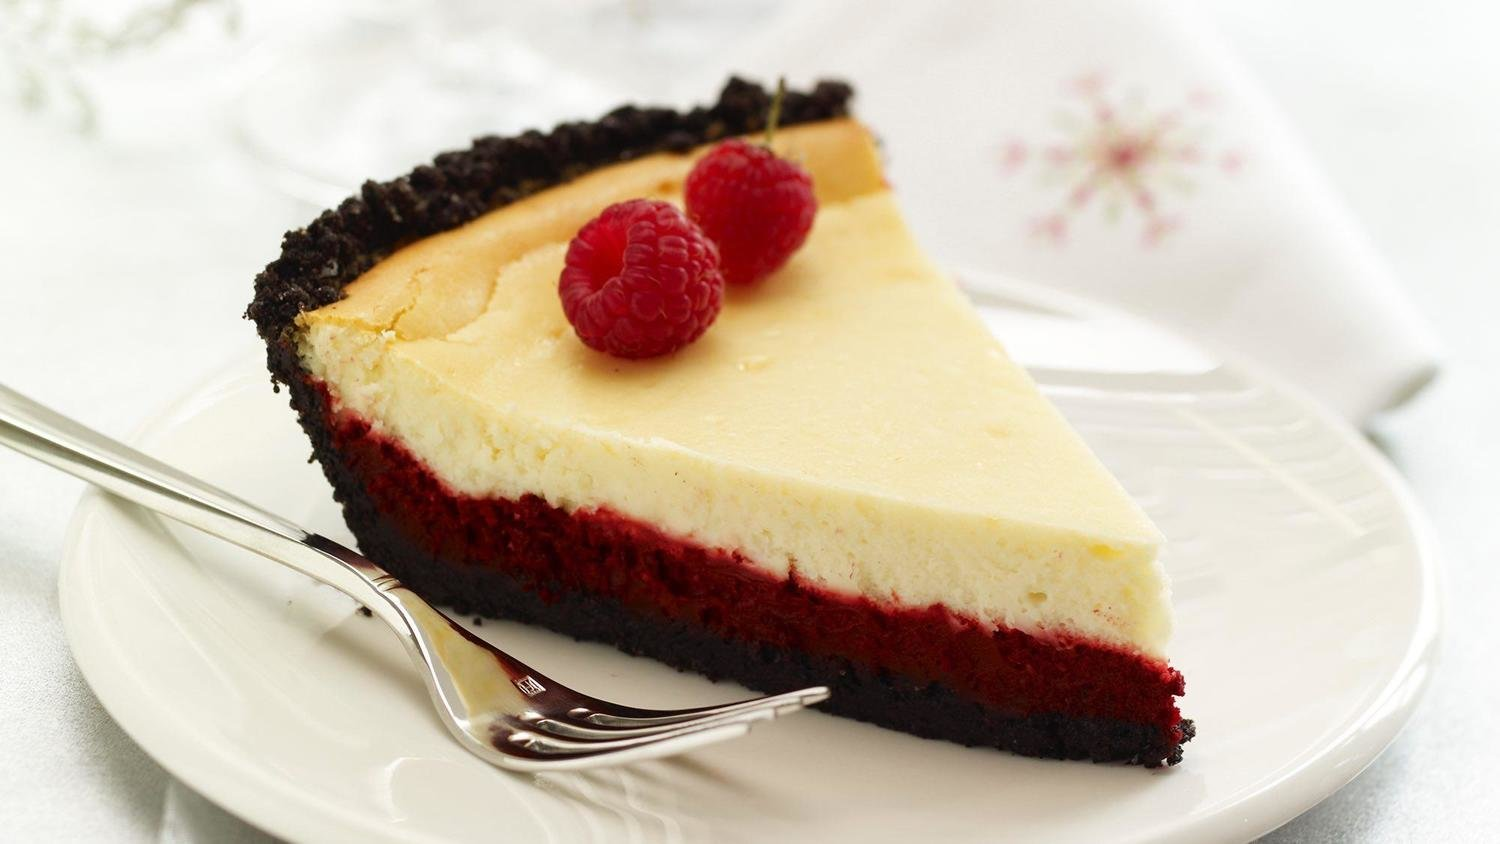 Pastry Passions Cakes (Slices) Red Velvet Cheese Cake